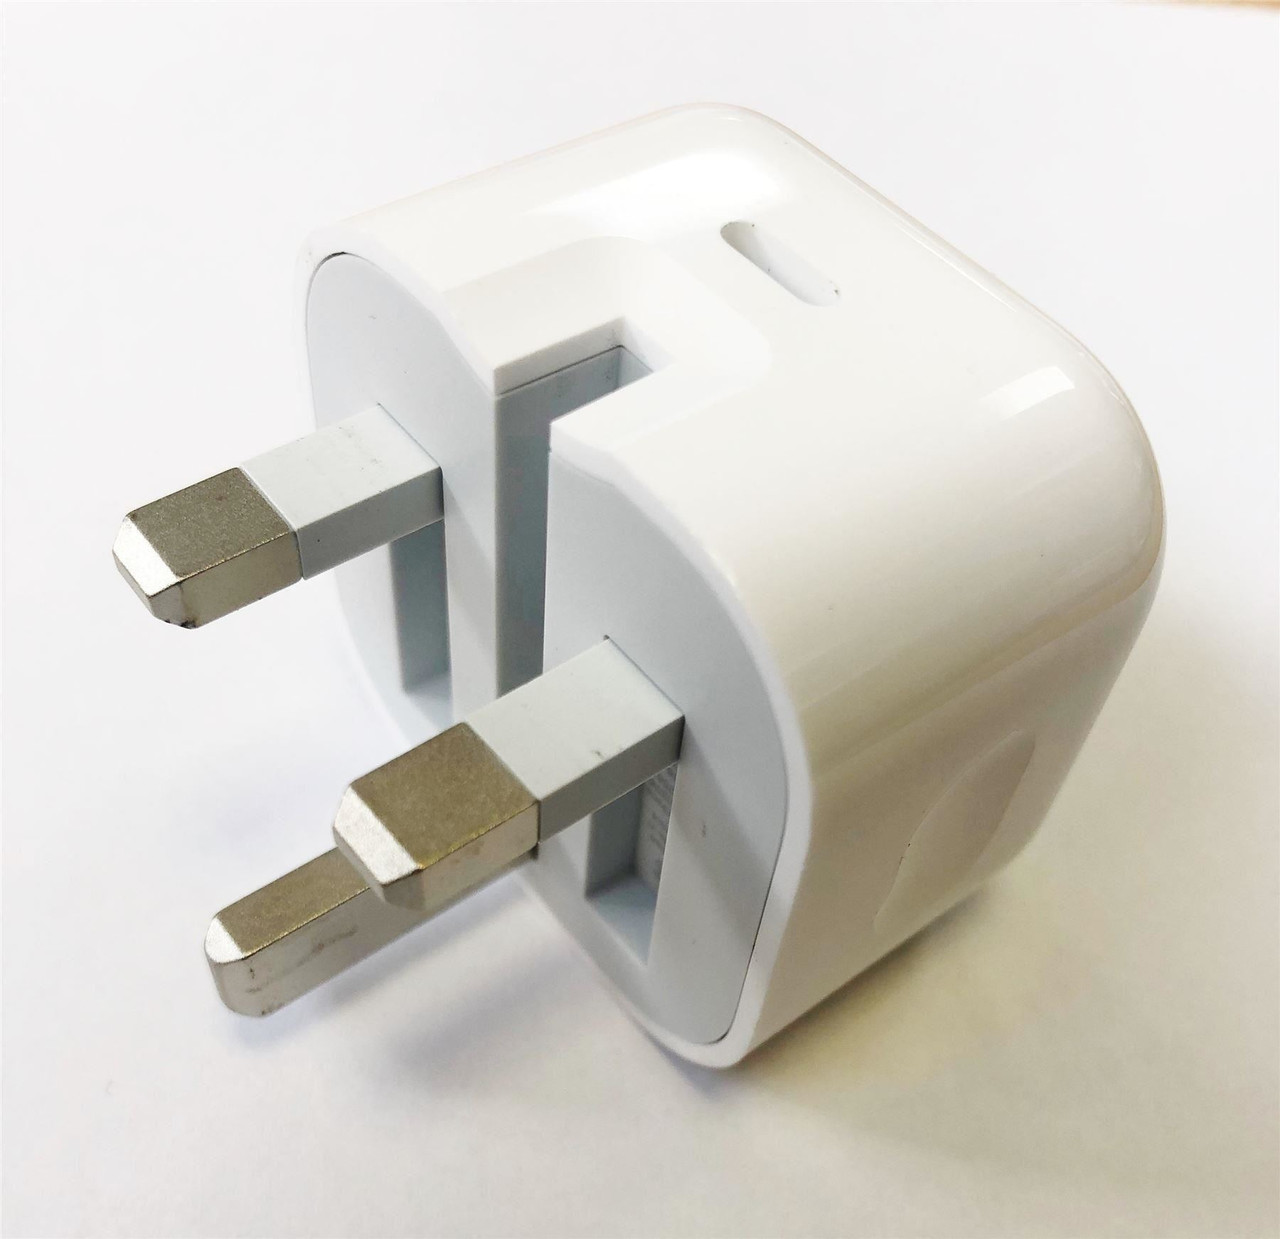 Official Apple A1696 MU7W2BA 18W UK 3 Pin USB Type C Charger Head Plug Power Adapter for iPad Pro (USB C) with USB C to Lightning Charge Cable (1m)